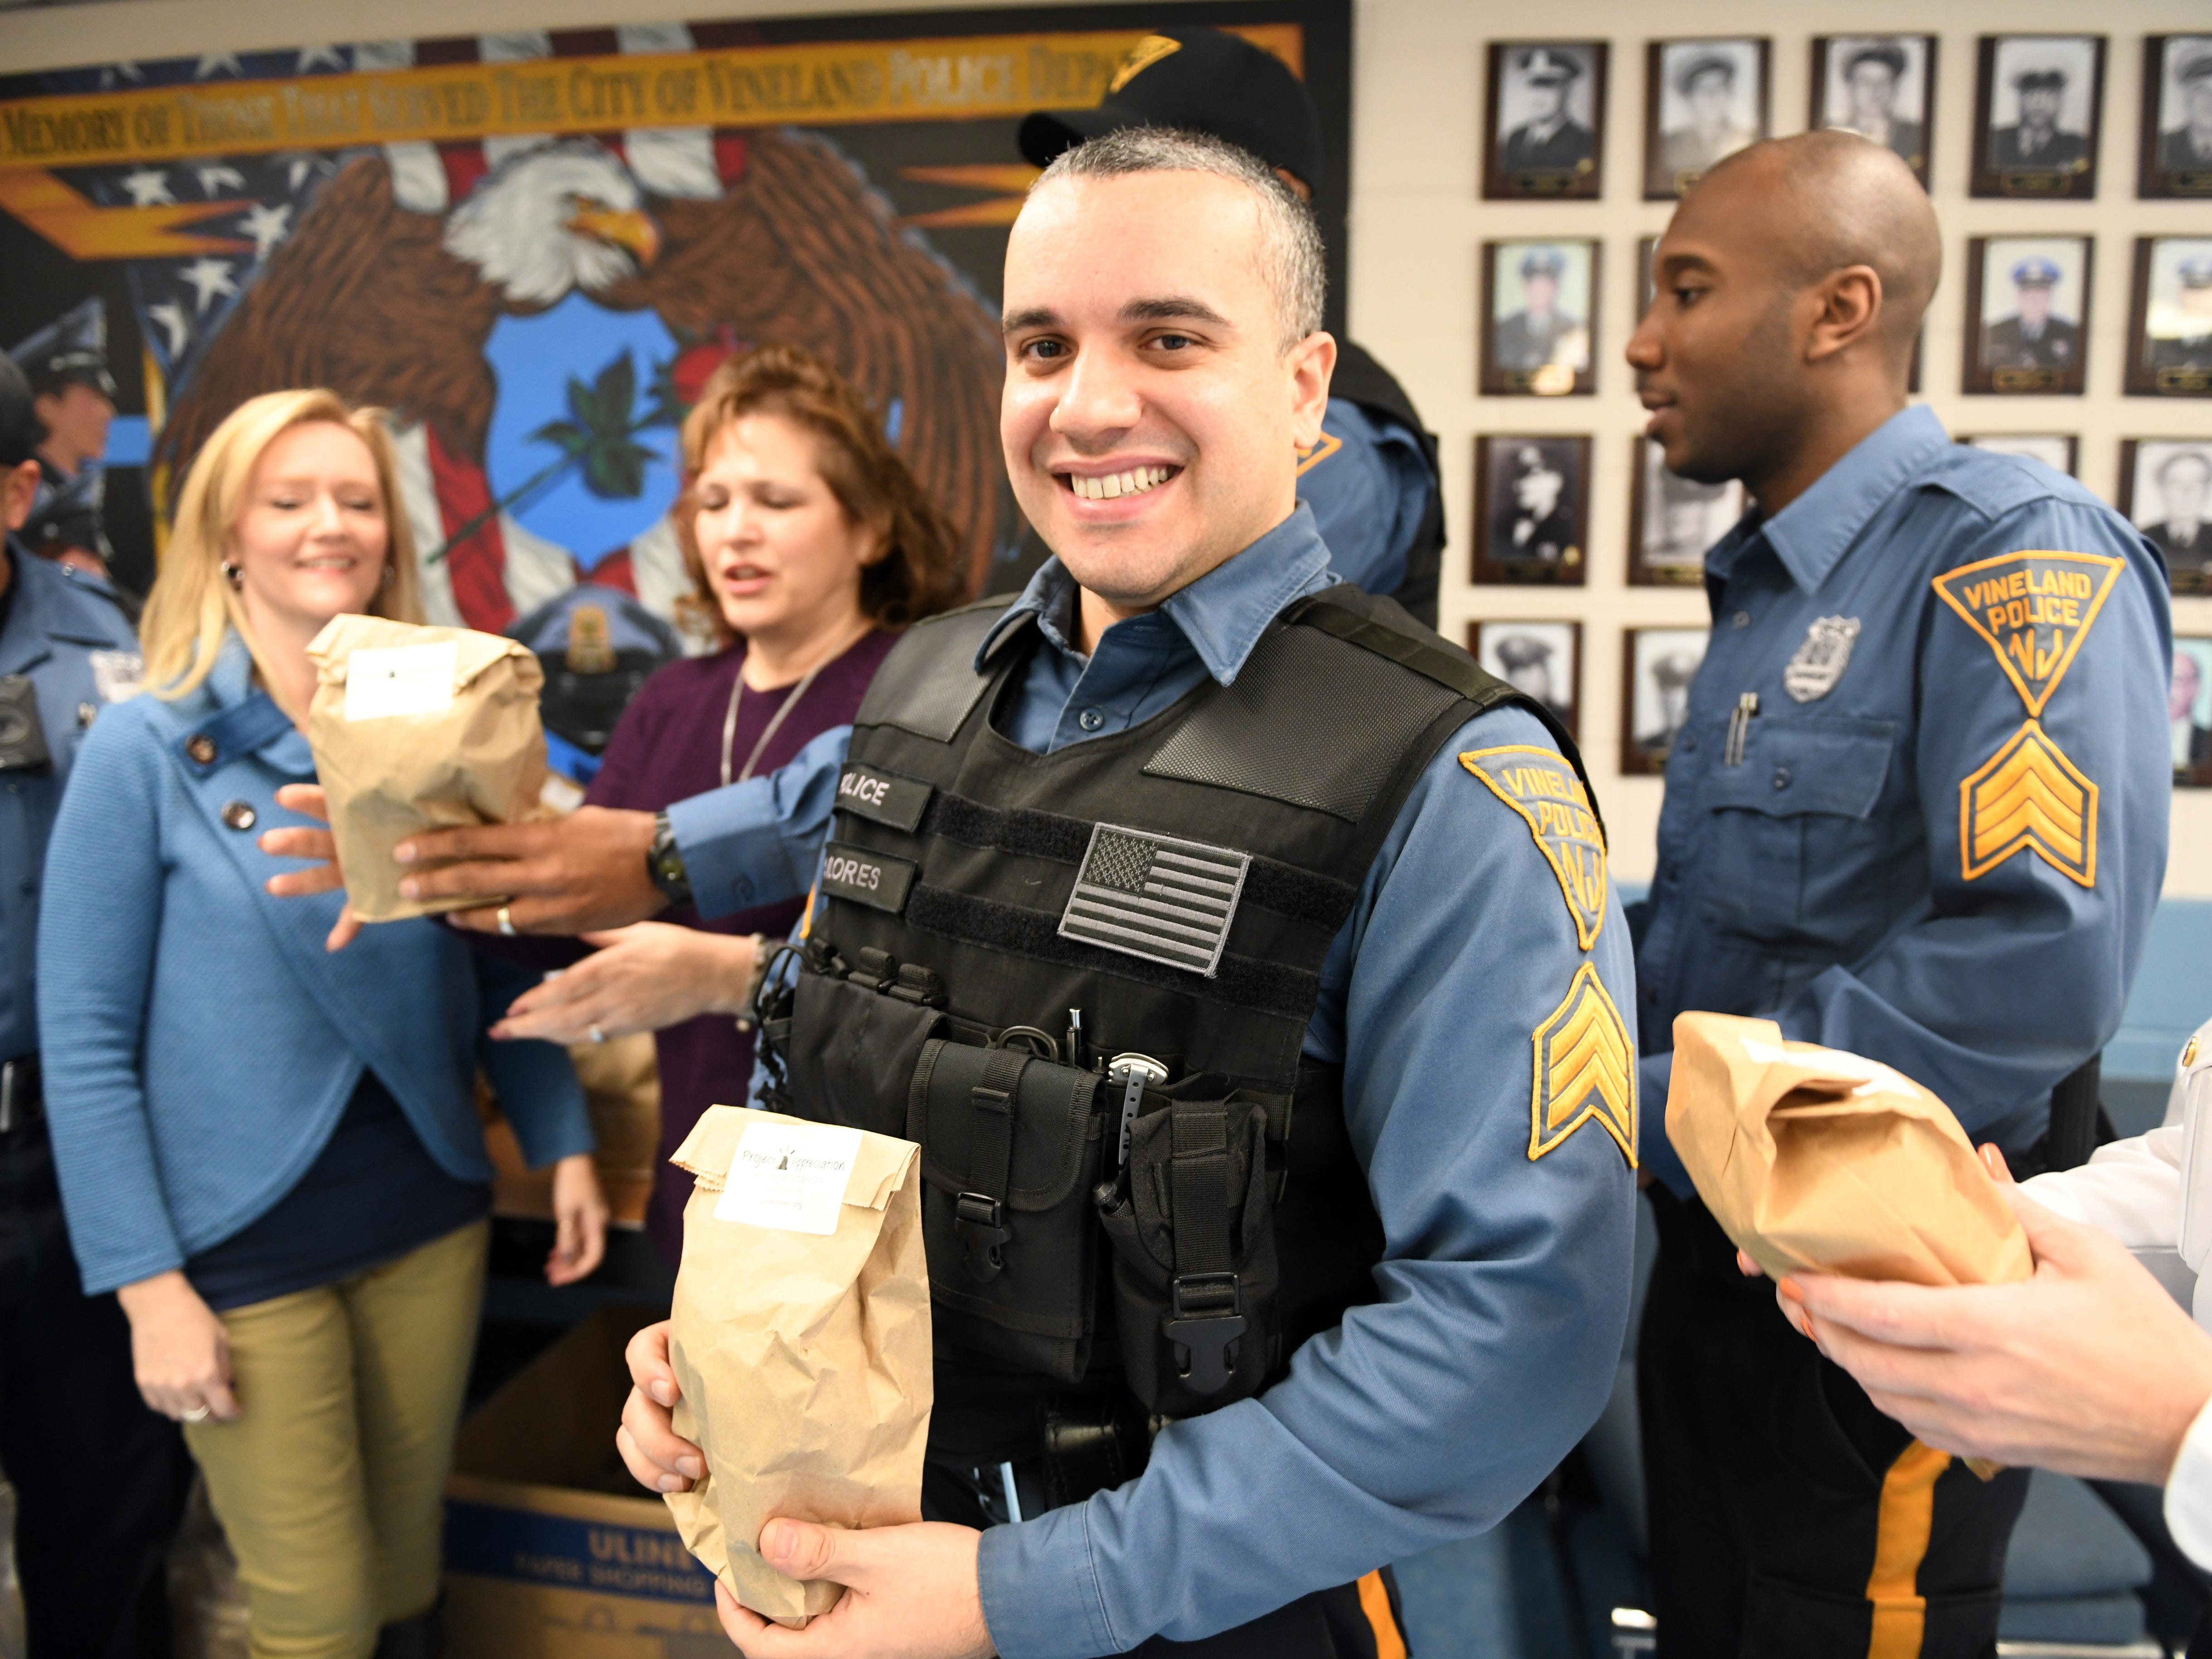 Sergeant Owen Flores holds a appreciation bag that was delivered by Volunteer Center of South Jersey staff members Maria Velez and Gabriella Smick on Wednesday, November 28, 2018.